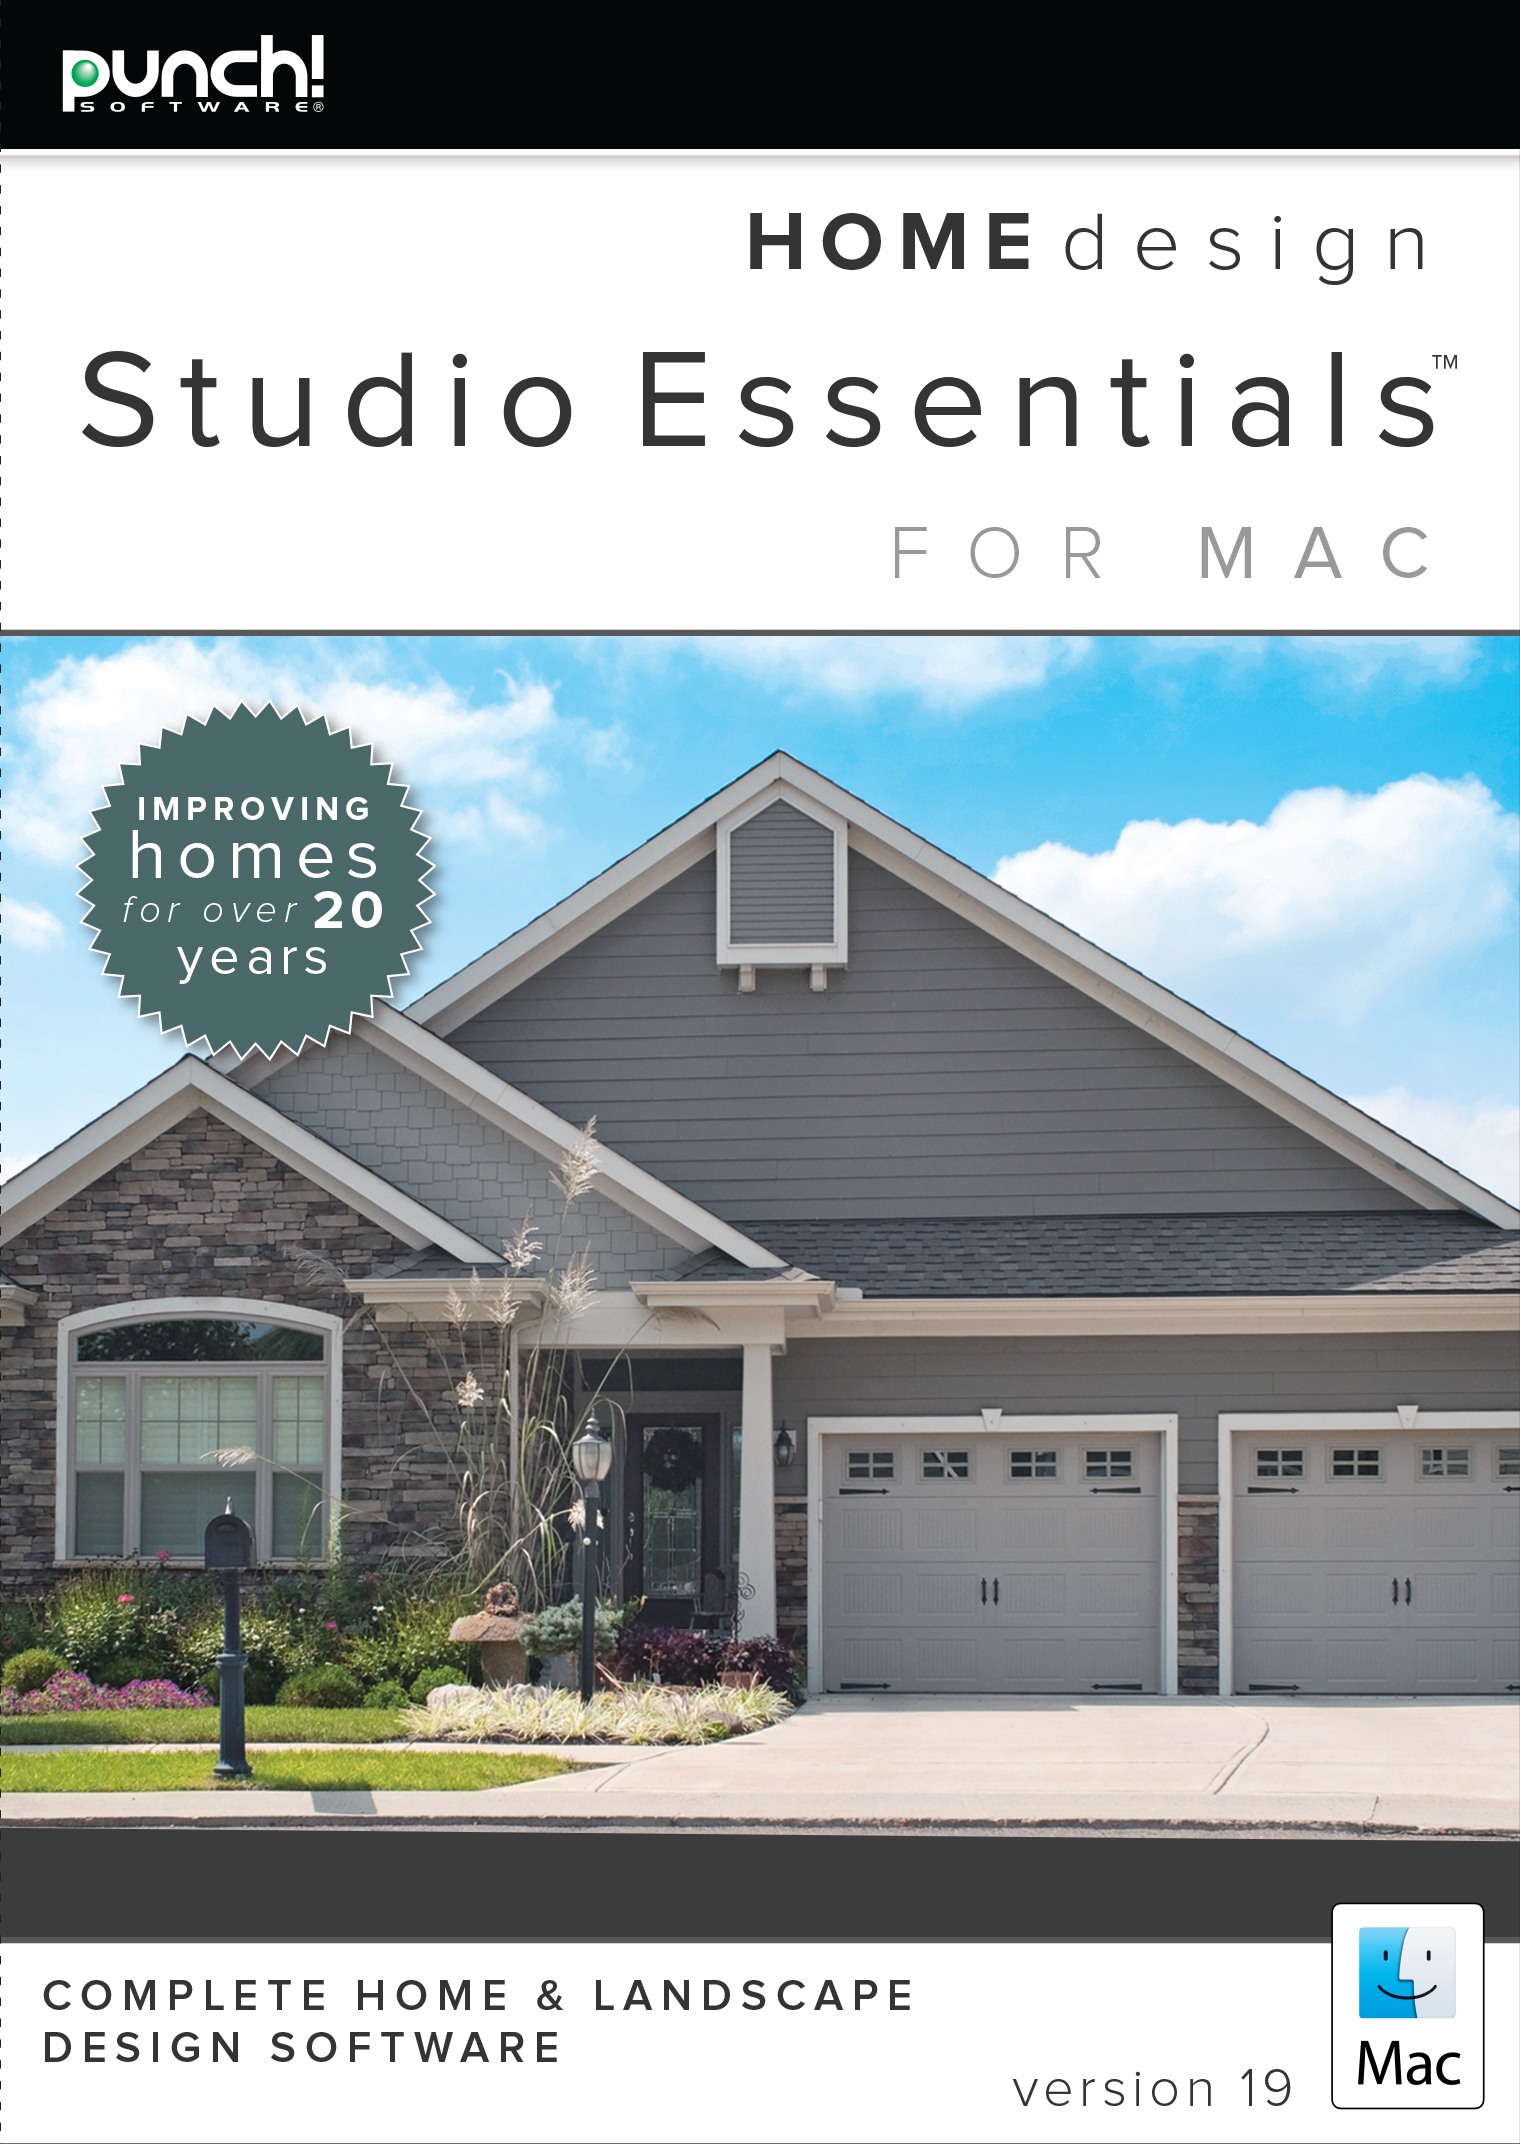 Punch Home Design Essentials For Mac V19 Download Software Computer Software Multimedia